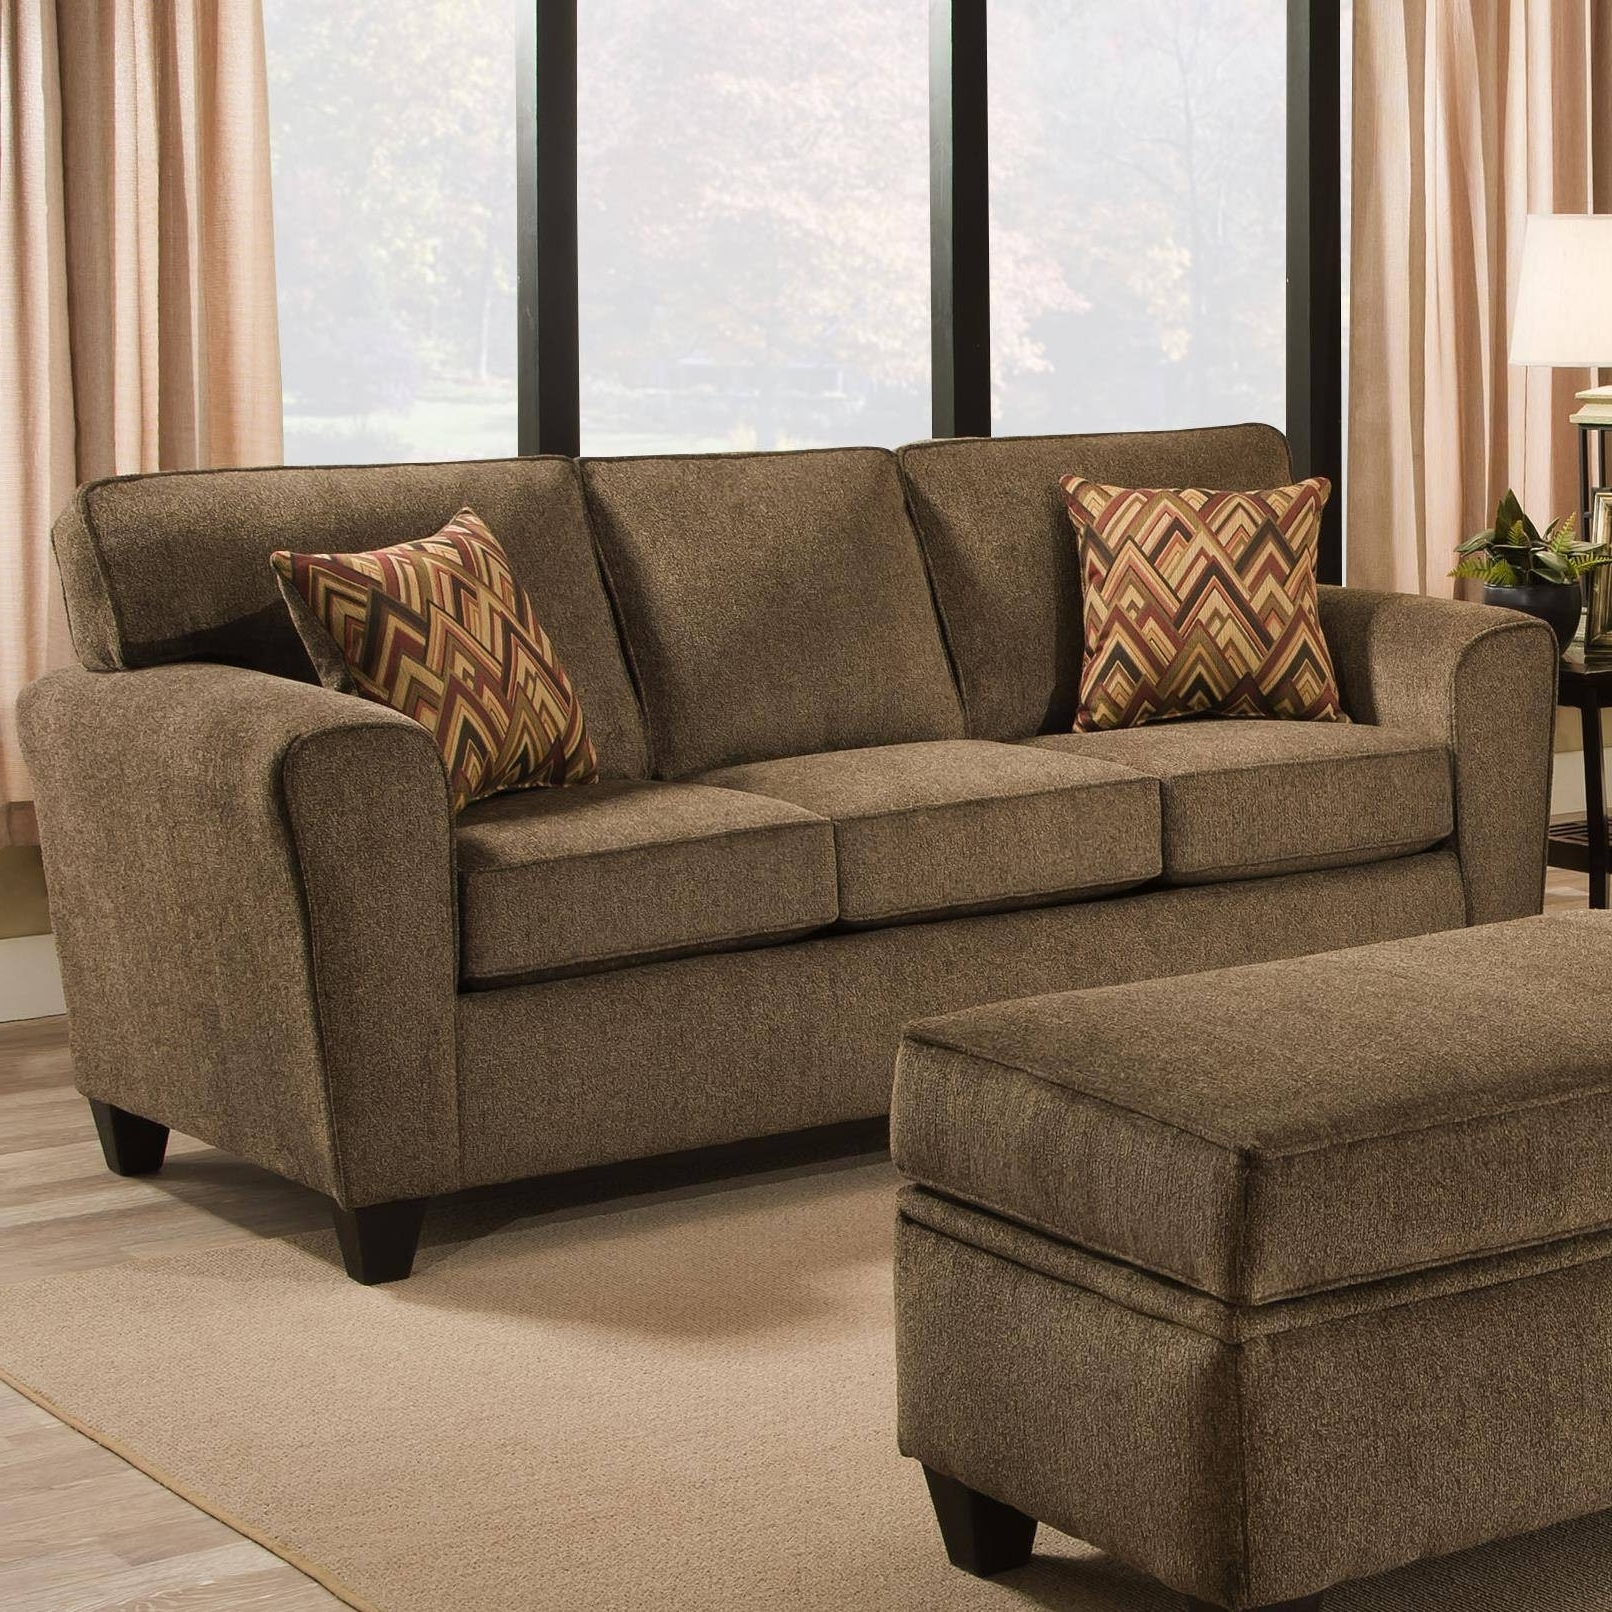 Most Recently Released Furniture : Ethan Allen Down Filled Sofa Beautiful Sectional Sofas Intended For Down Sectional Sofas (View 14 of 20)